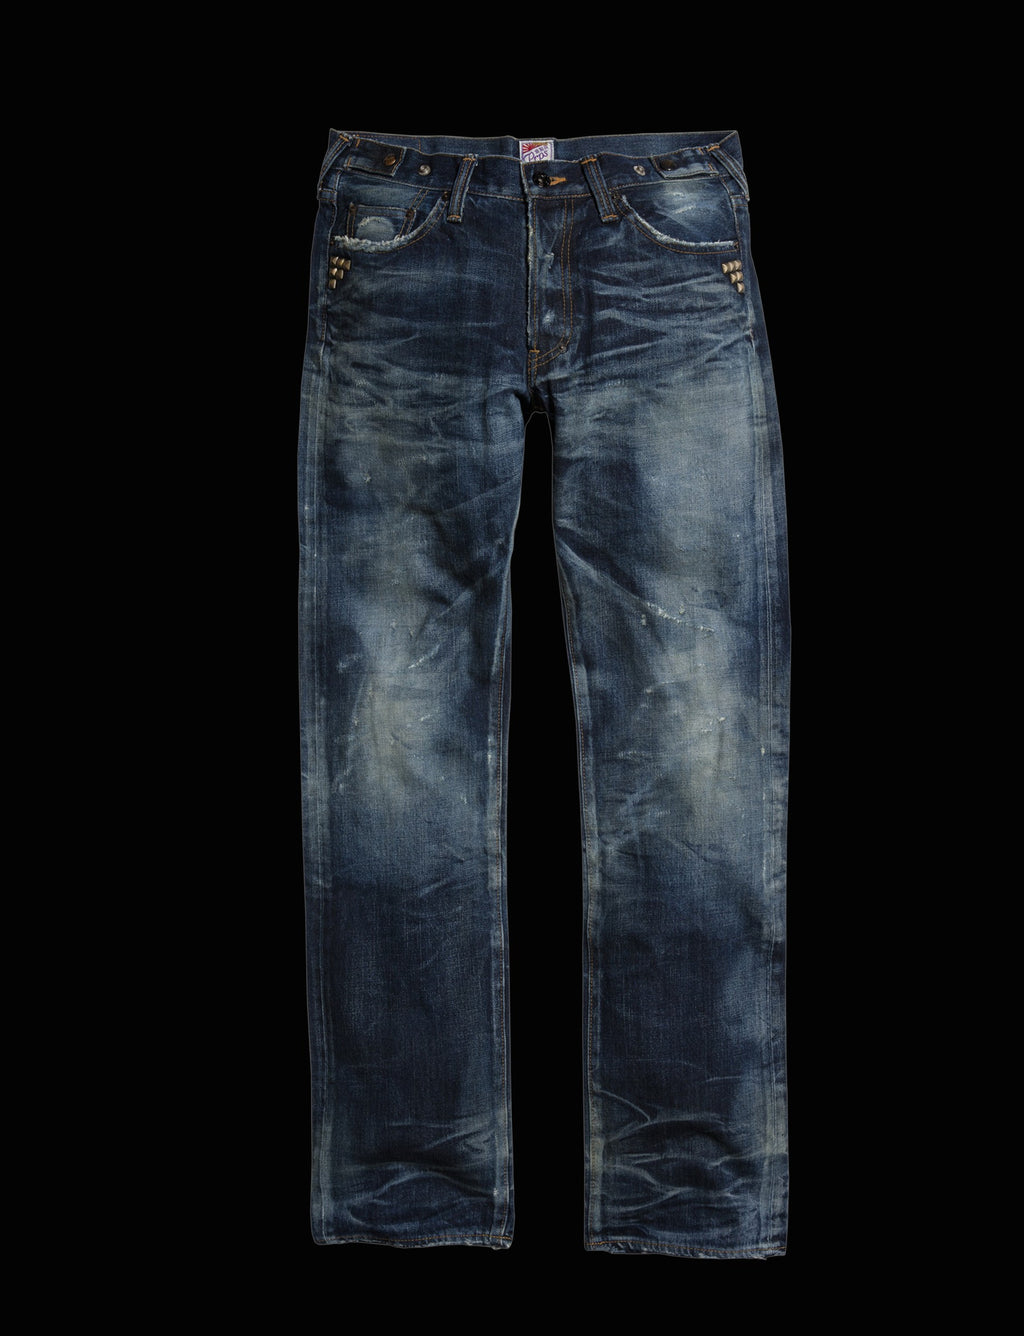 Prps - Barracuda - West Ridge - Jeans - Prps